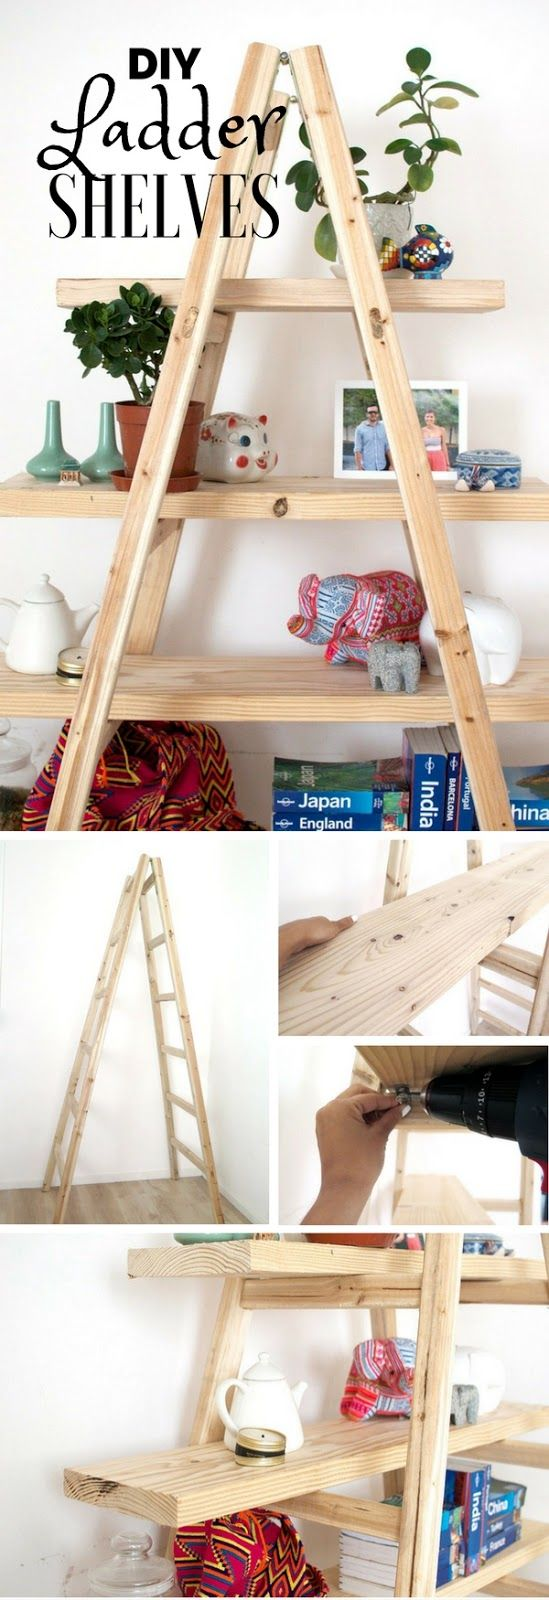 25 best ideas about homemade furniture on pinterest homemade spare bedroom furniture - Minimalist images of bookshelves with ladder for home interior decoration ...